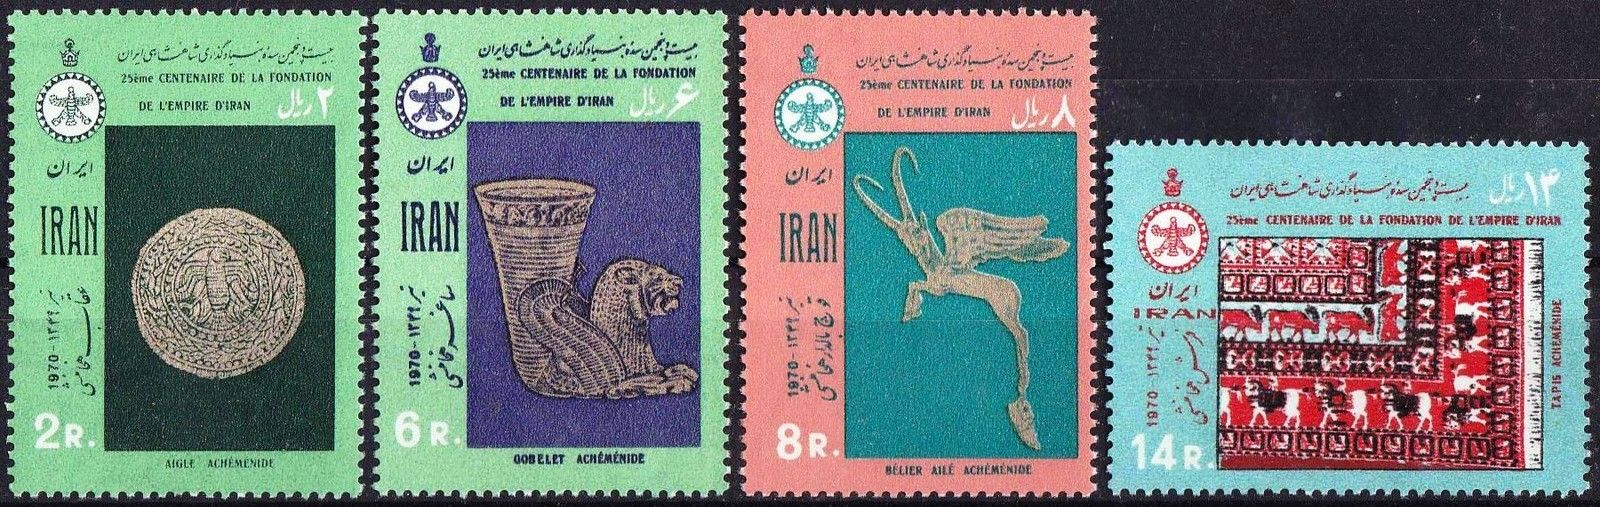 Iran 1970 Stamps 2500th Anniversary Of Persian Empire MNH